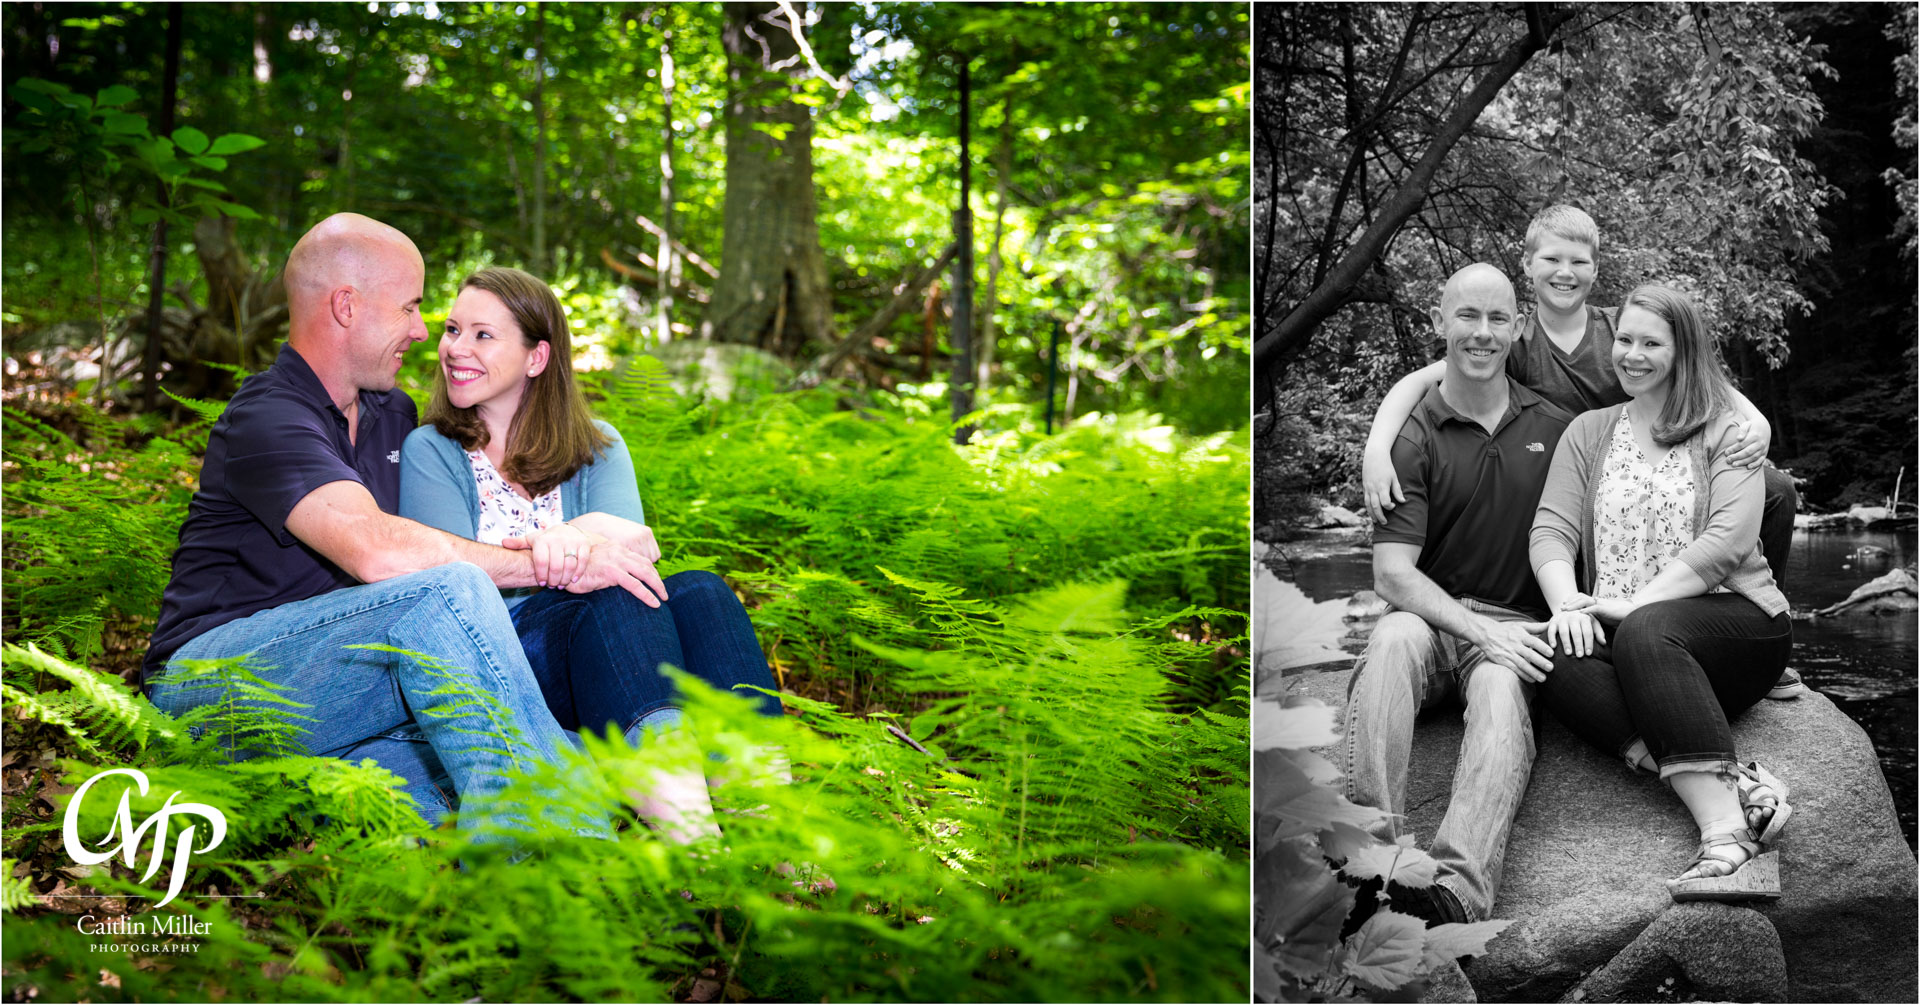 kitterman-3.jpg from Kyla and Bill's sweet summer engagement at Mianus River Park in Stamford CT by Saratoga Wedding Photographer Caitlin Miller Photography. Lake George Wedding Photographer. Stamford wedding photographer. Connecticut wedding photographer. Greenwich Wedding Photographer. Saratoga Wedding Photographer